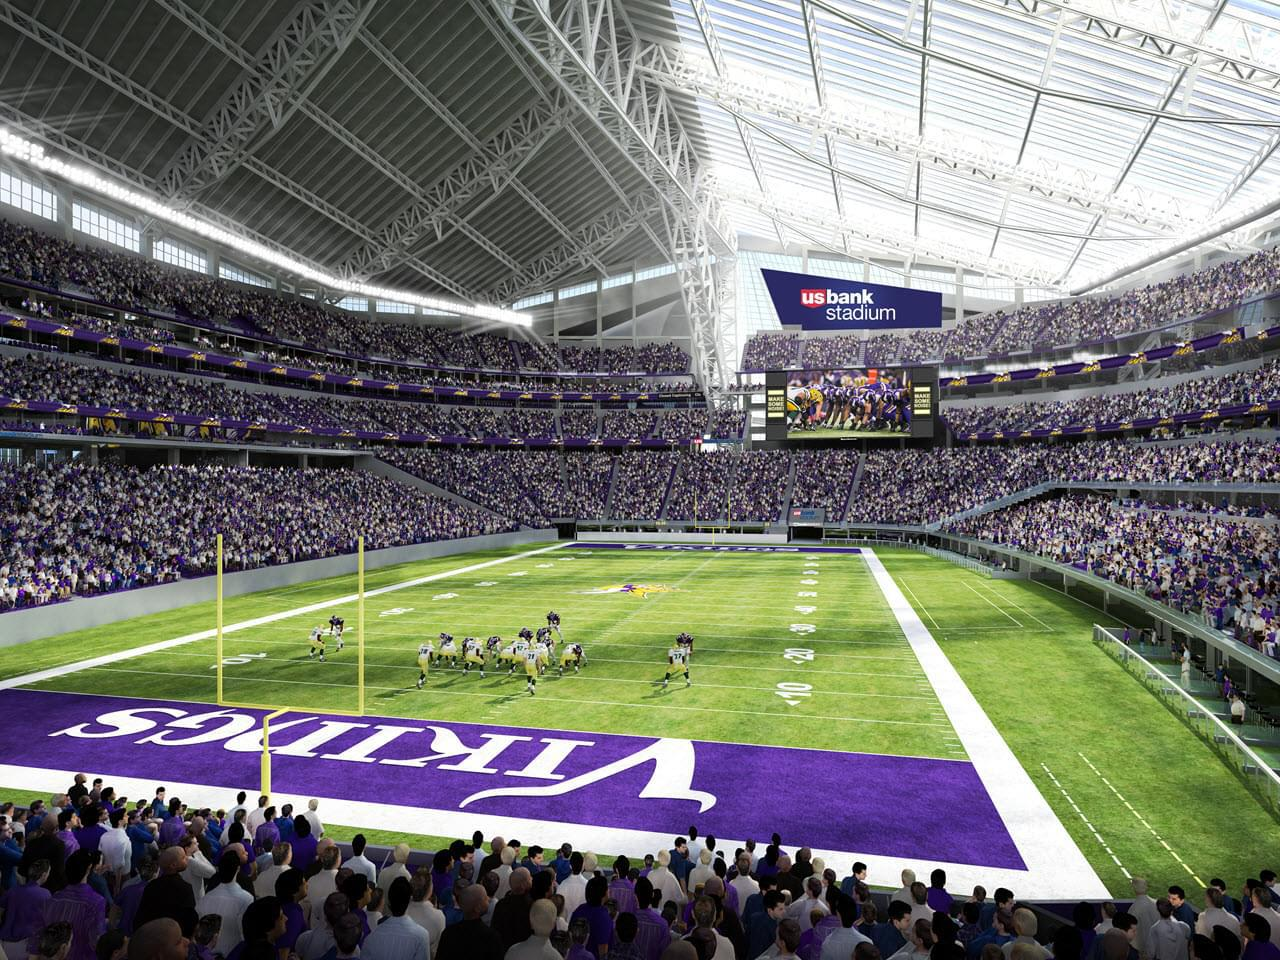 The Minnesota Vikings Have A New Home Supported By Made